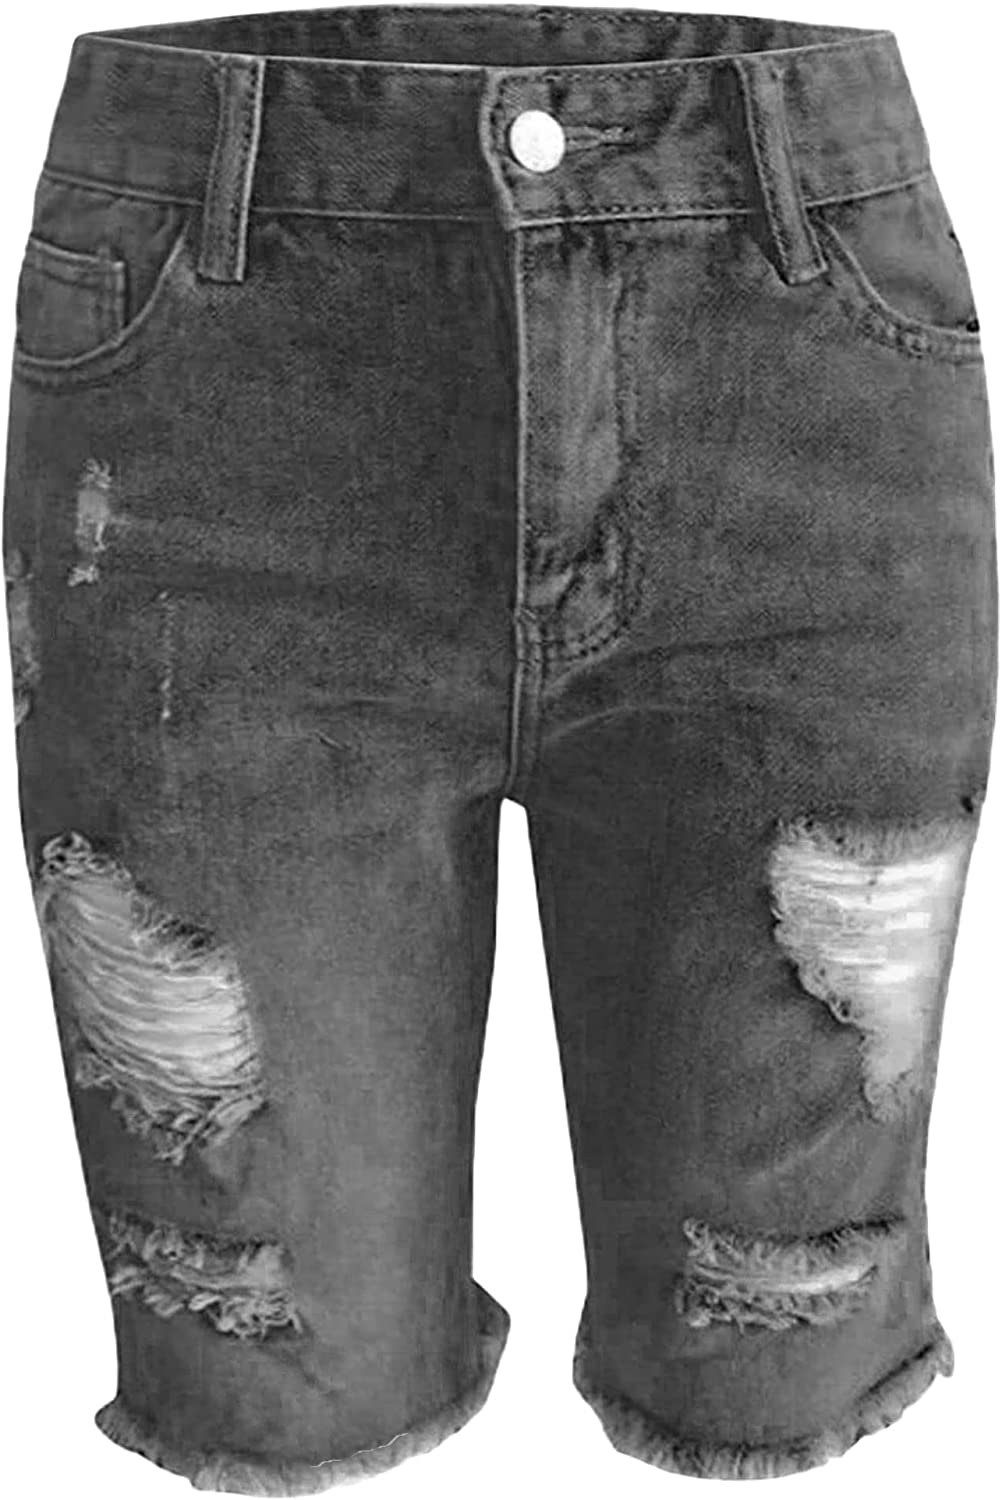 Women's Ripped Bermuda Jean Shorts Jeans With Max Max 73% OFF 56% OFF Lenght Knee Summer